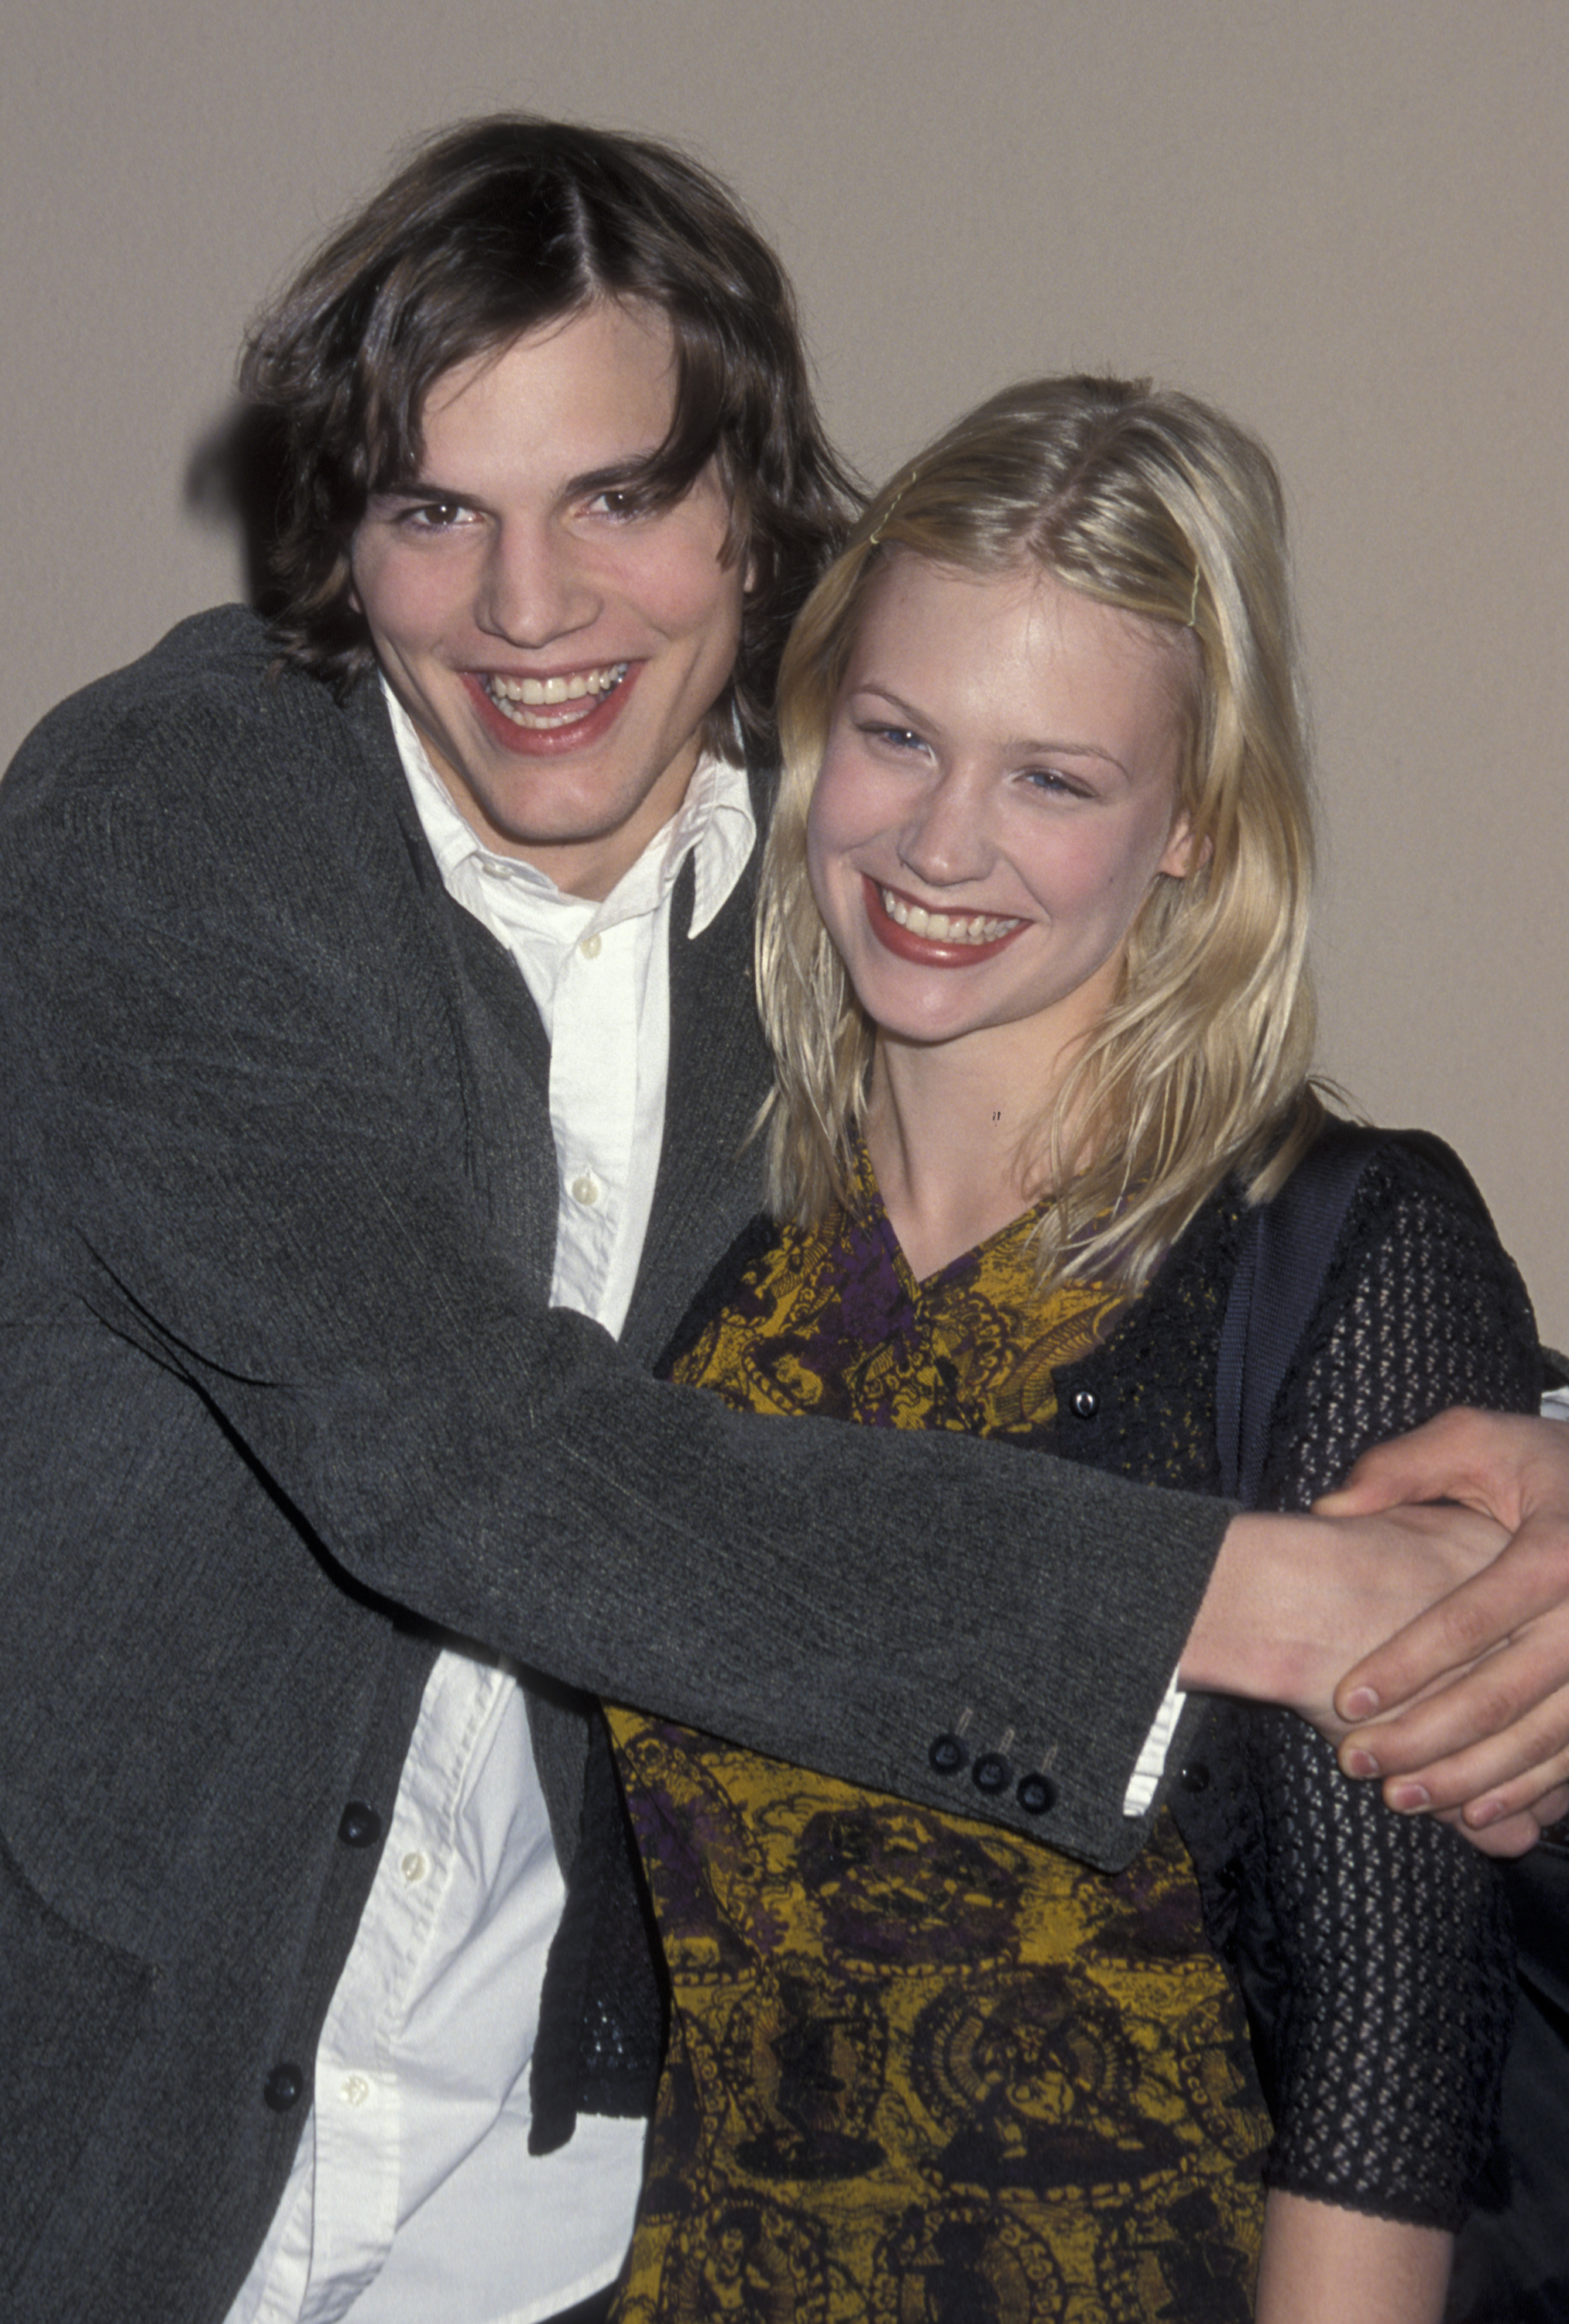 Ashton Kutcher and January Jones attend FOX TV All Star Party at Perino's Restaurant in Los Angeles on Jan. 16, 1999.